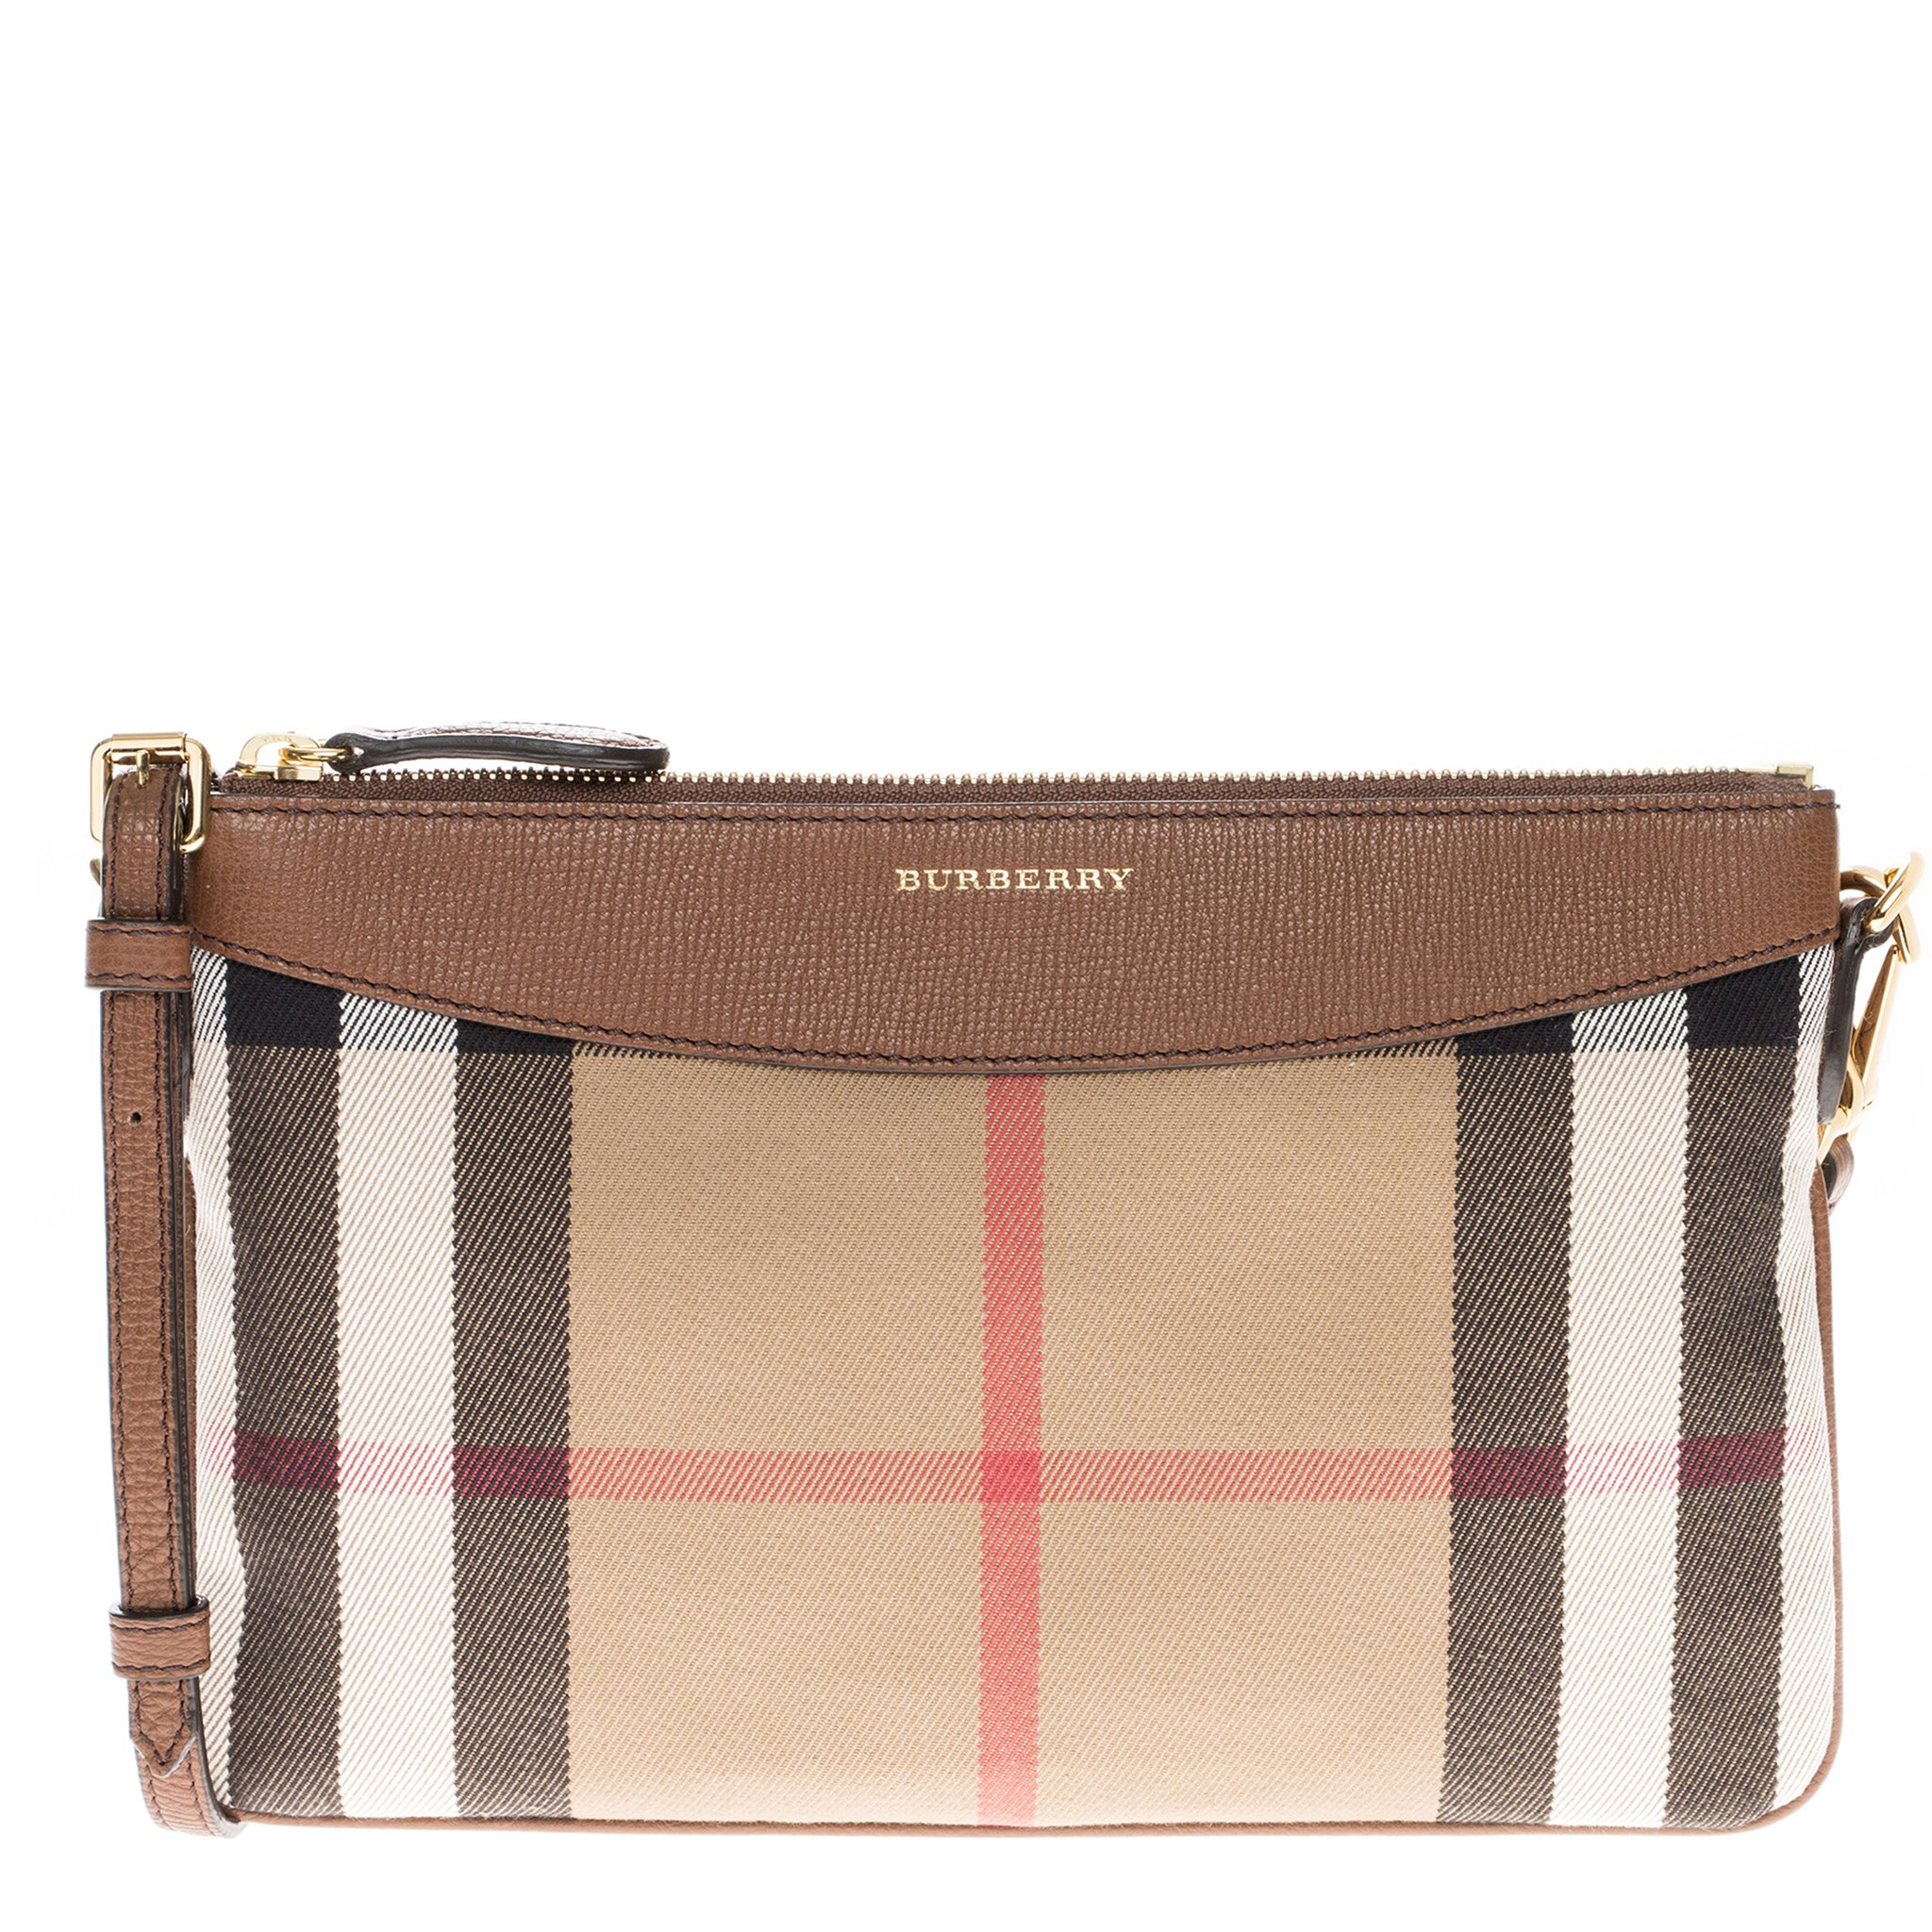 Burberry Women's House Check and Leather Clutch Bag Beige + Brown